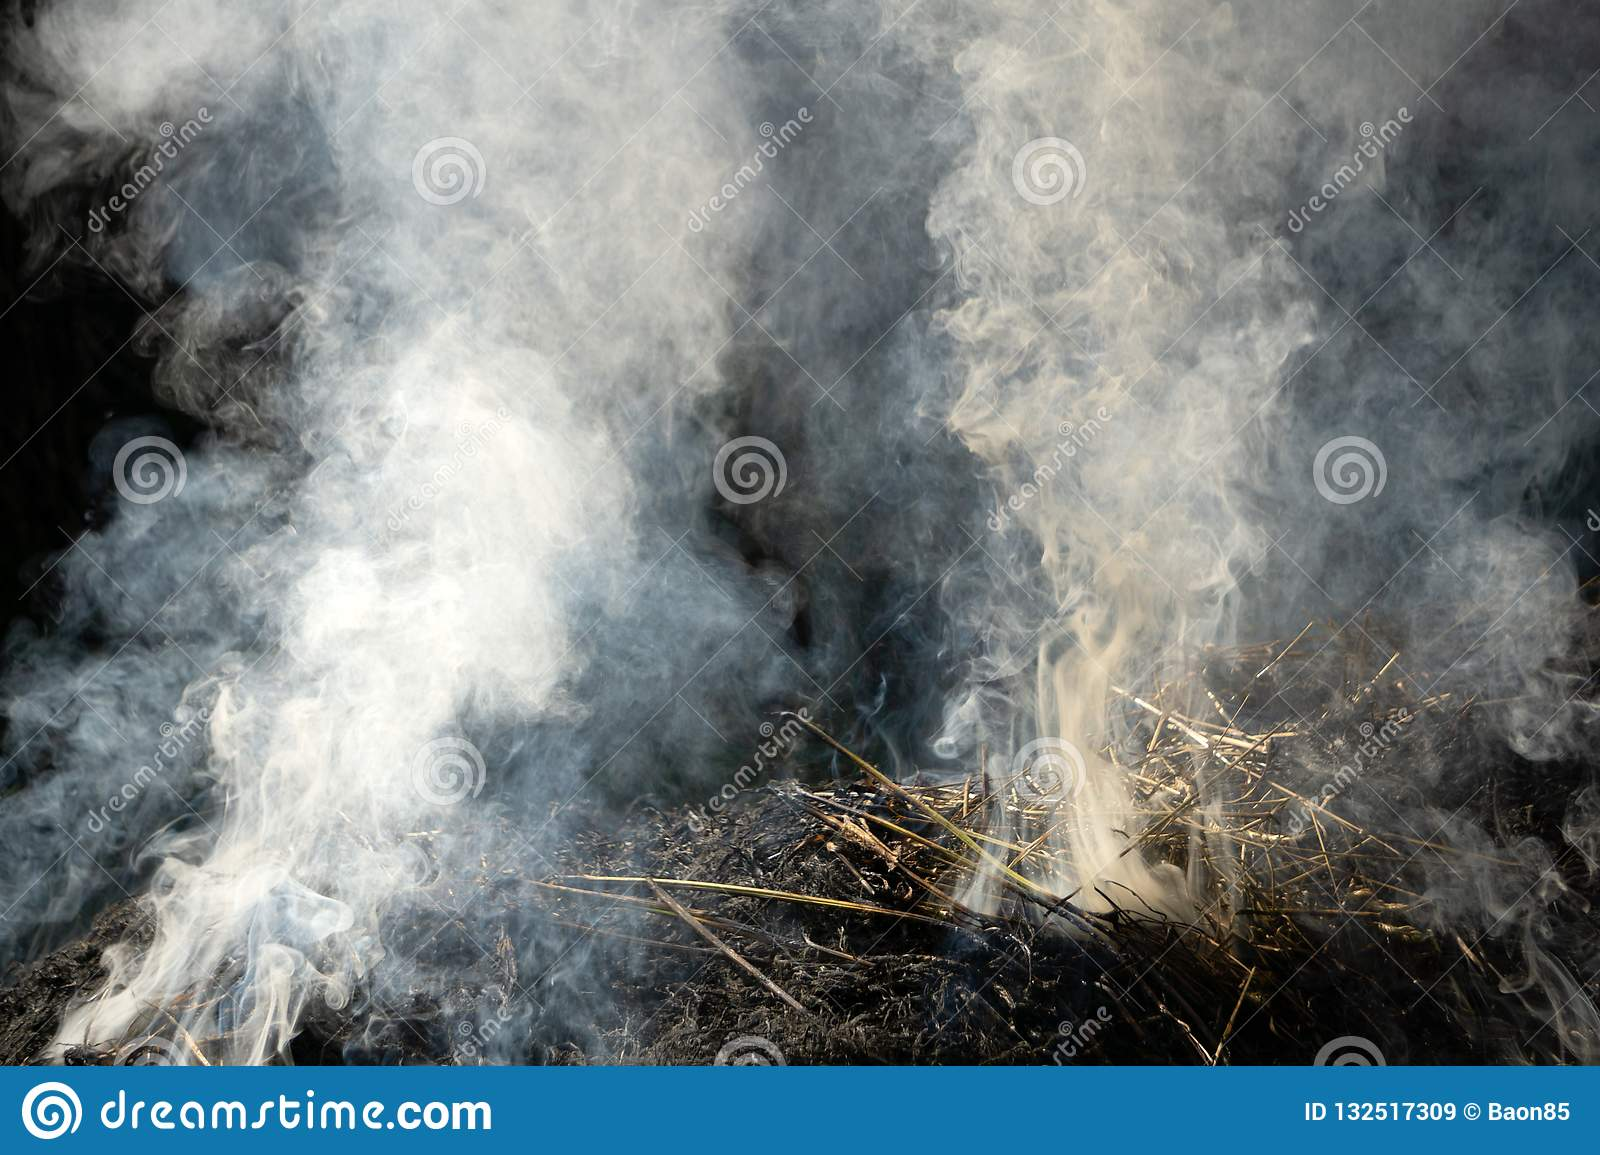 Close up fire burning stack of rice straw almost complete